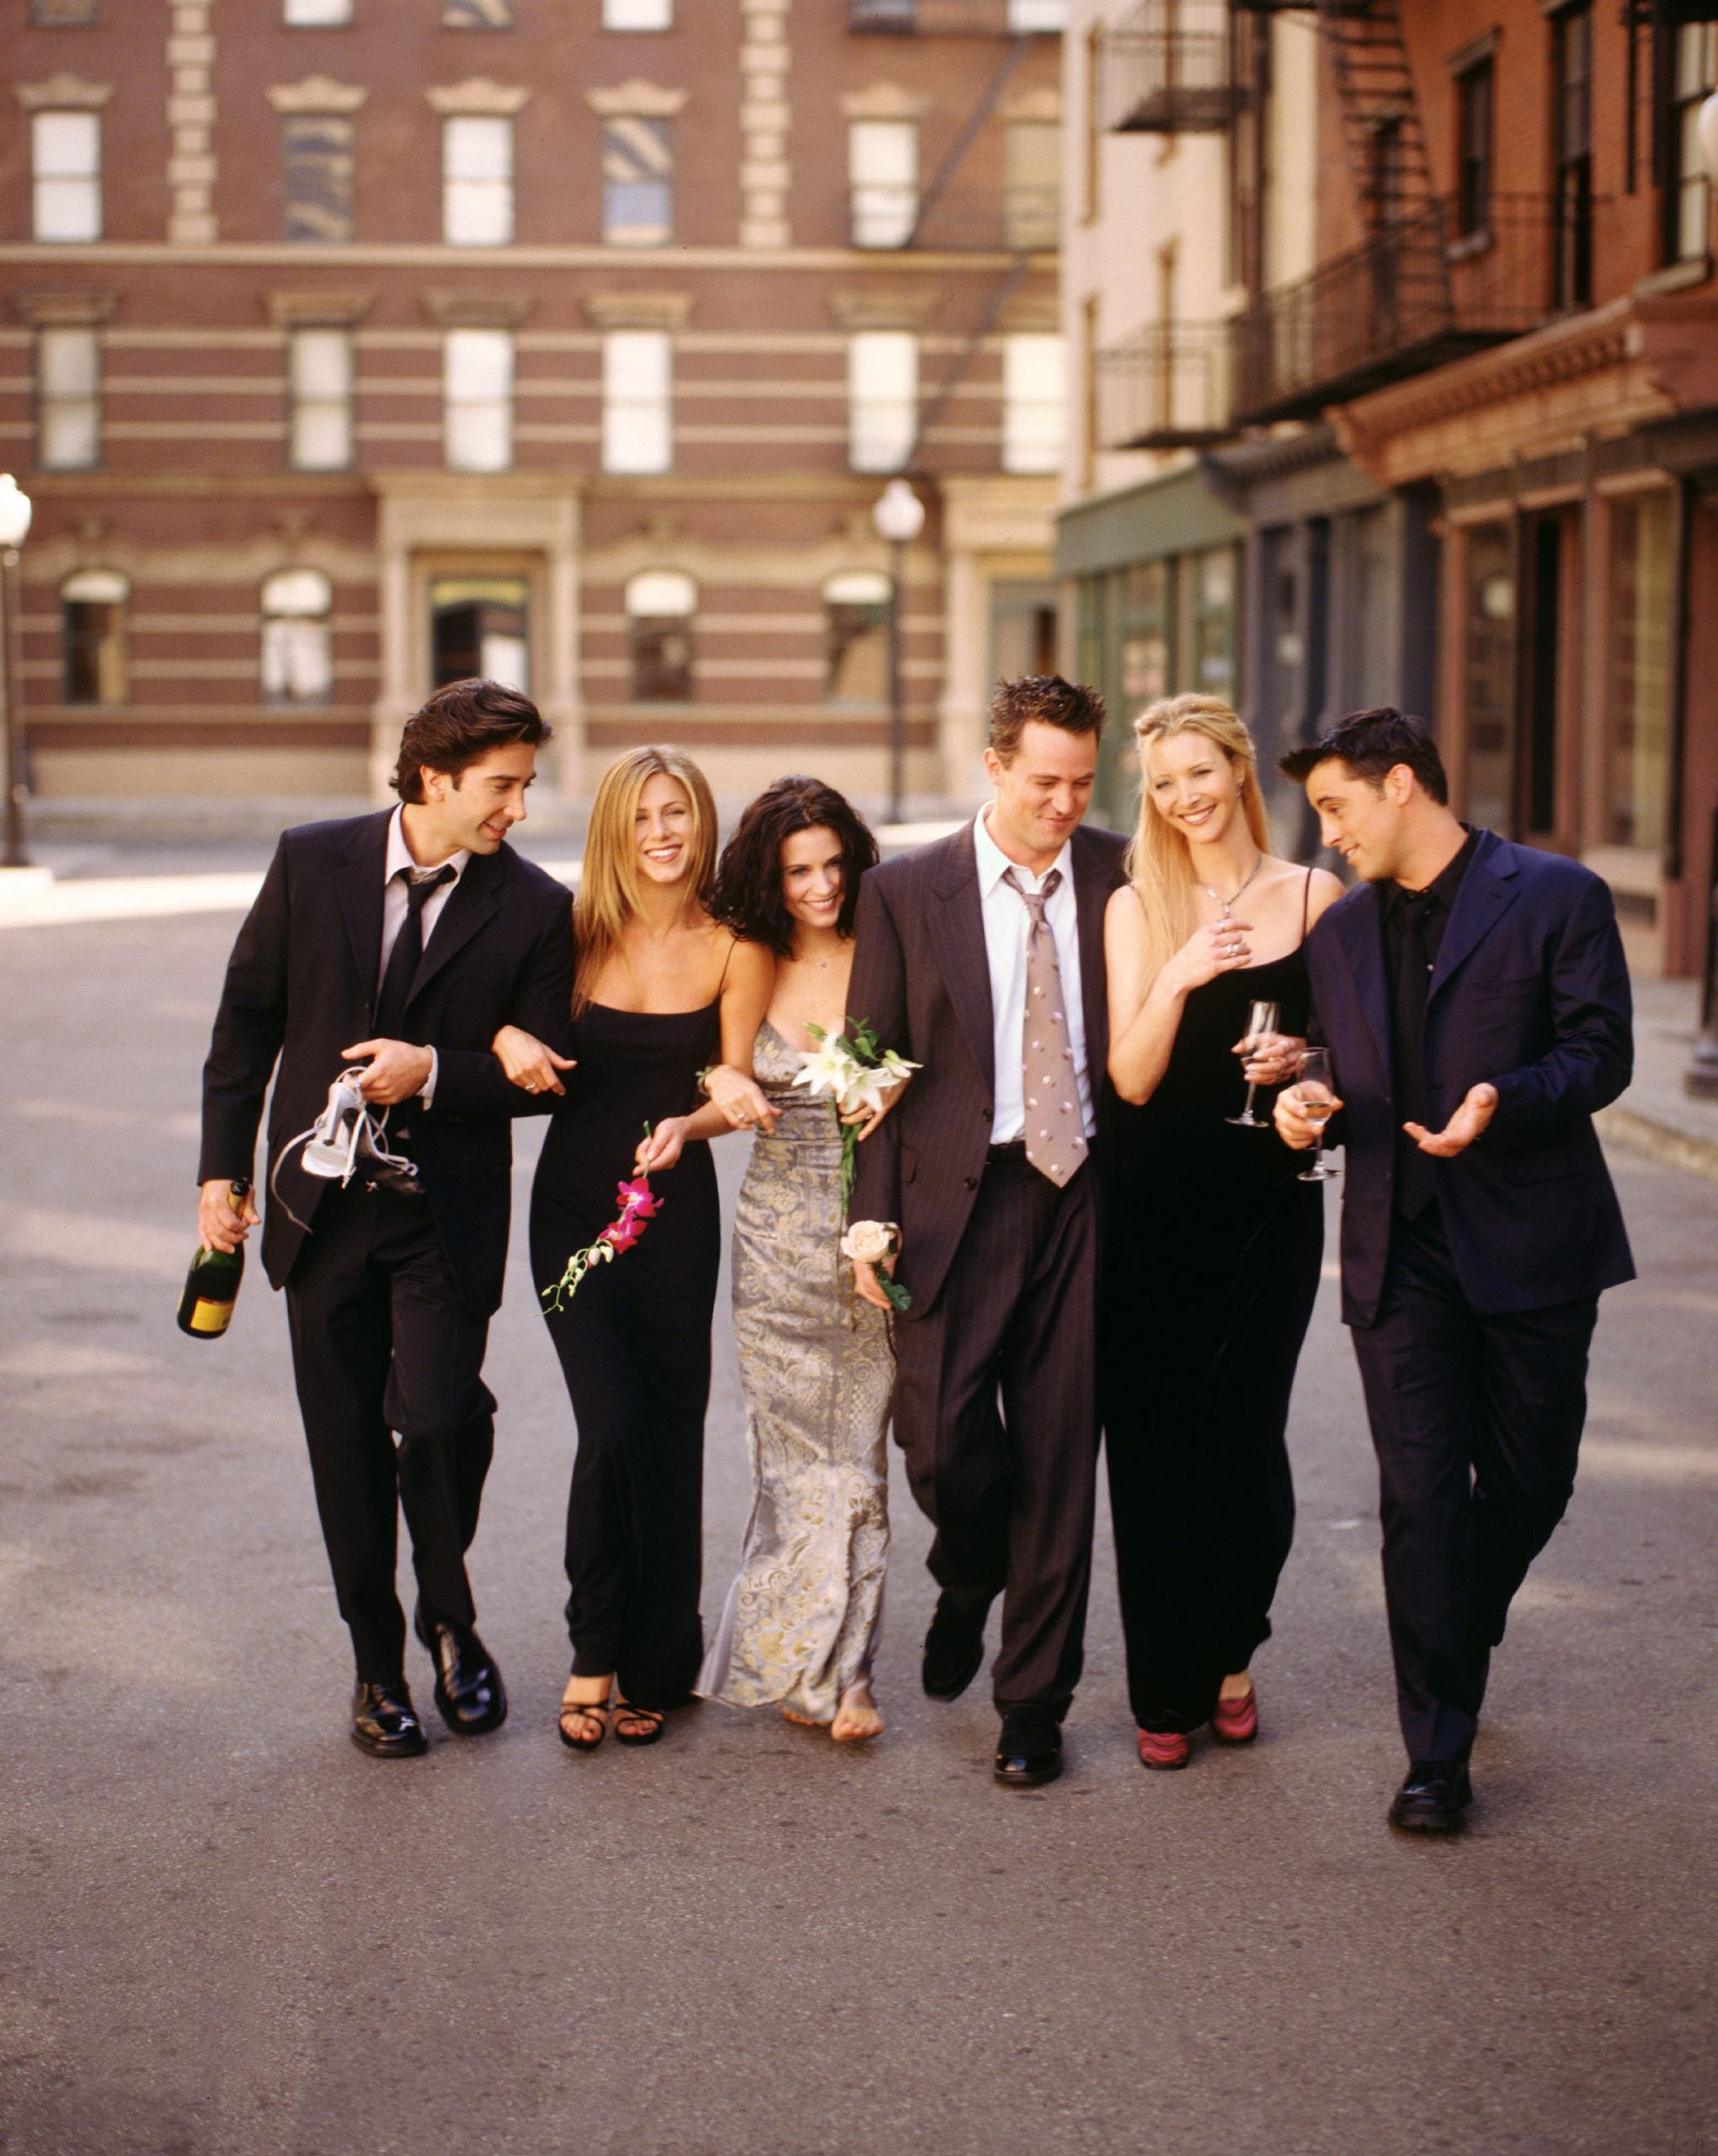 I thought I was over the naïve Nineties optimism of Friends. The reunion proved me wrong